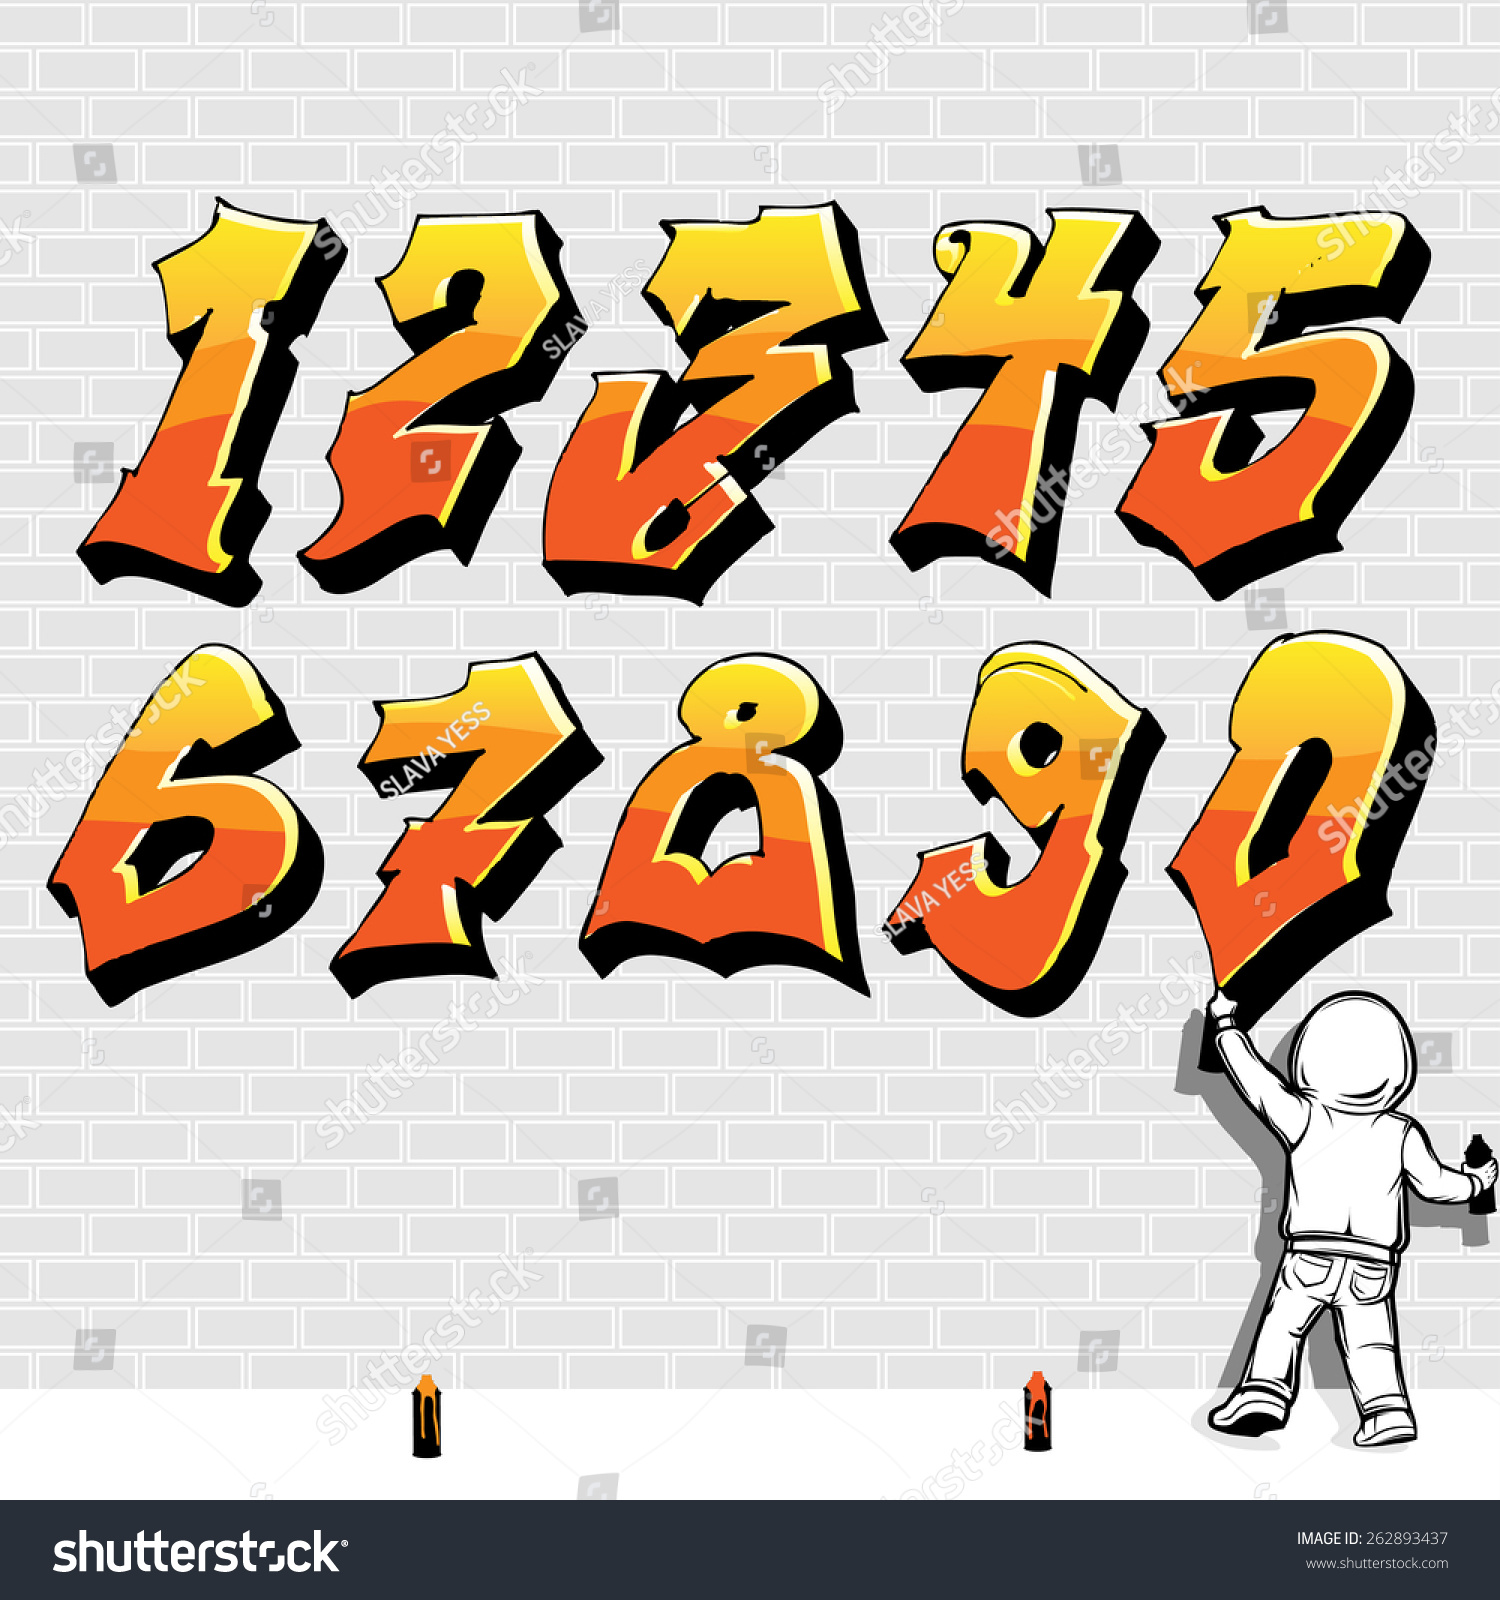 Graffiti style font fire like kid painting on brick wall part 2 2 vector